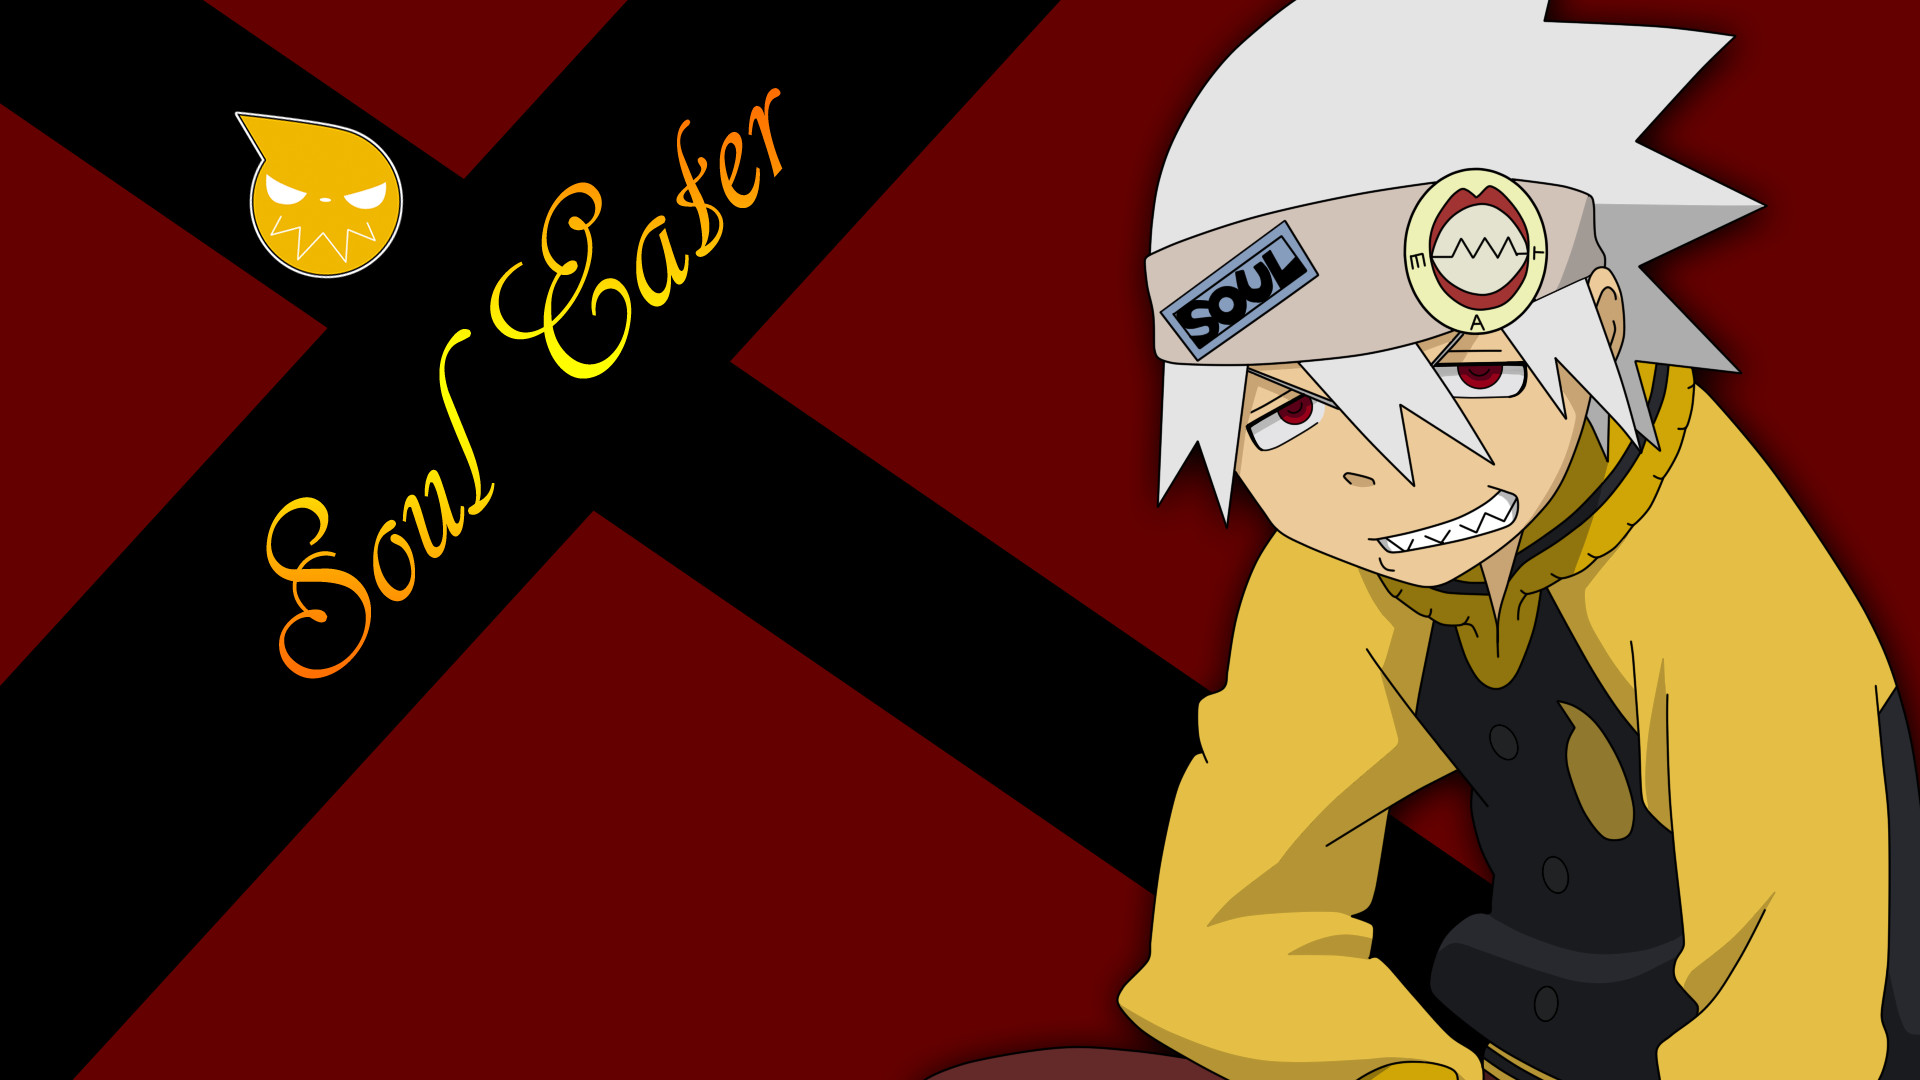 Res: 1920x1080, Soul Eater Wallpaper 4 by Hinata70756 Soul Eater Wallpaper 4 by Hinata70756